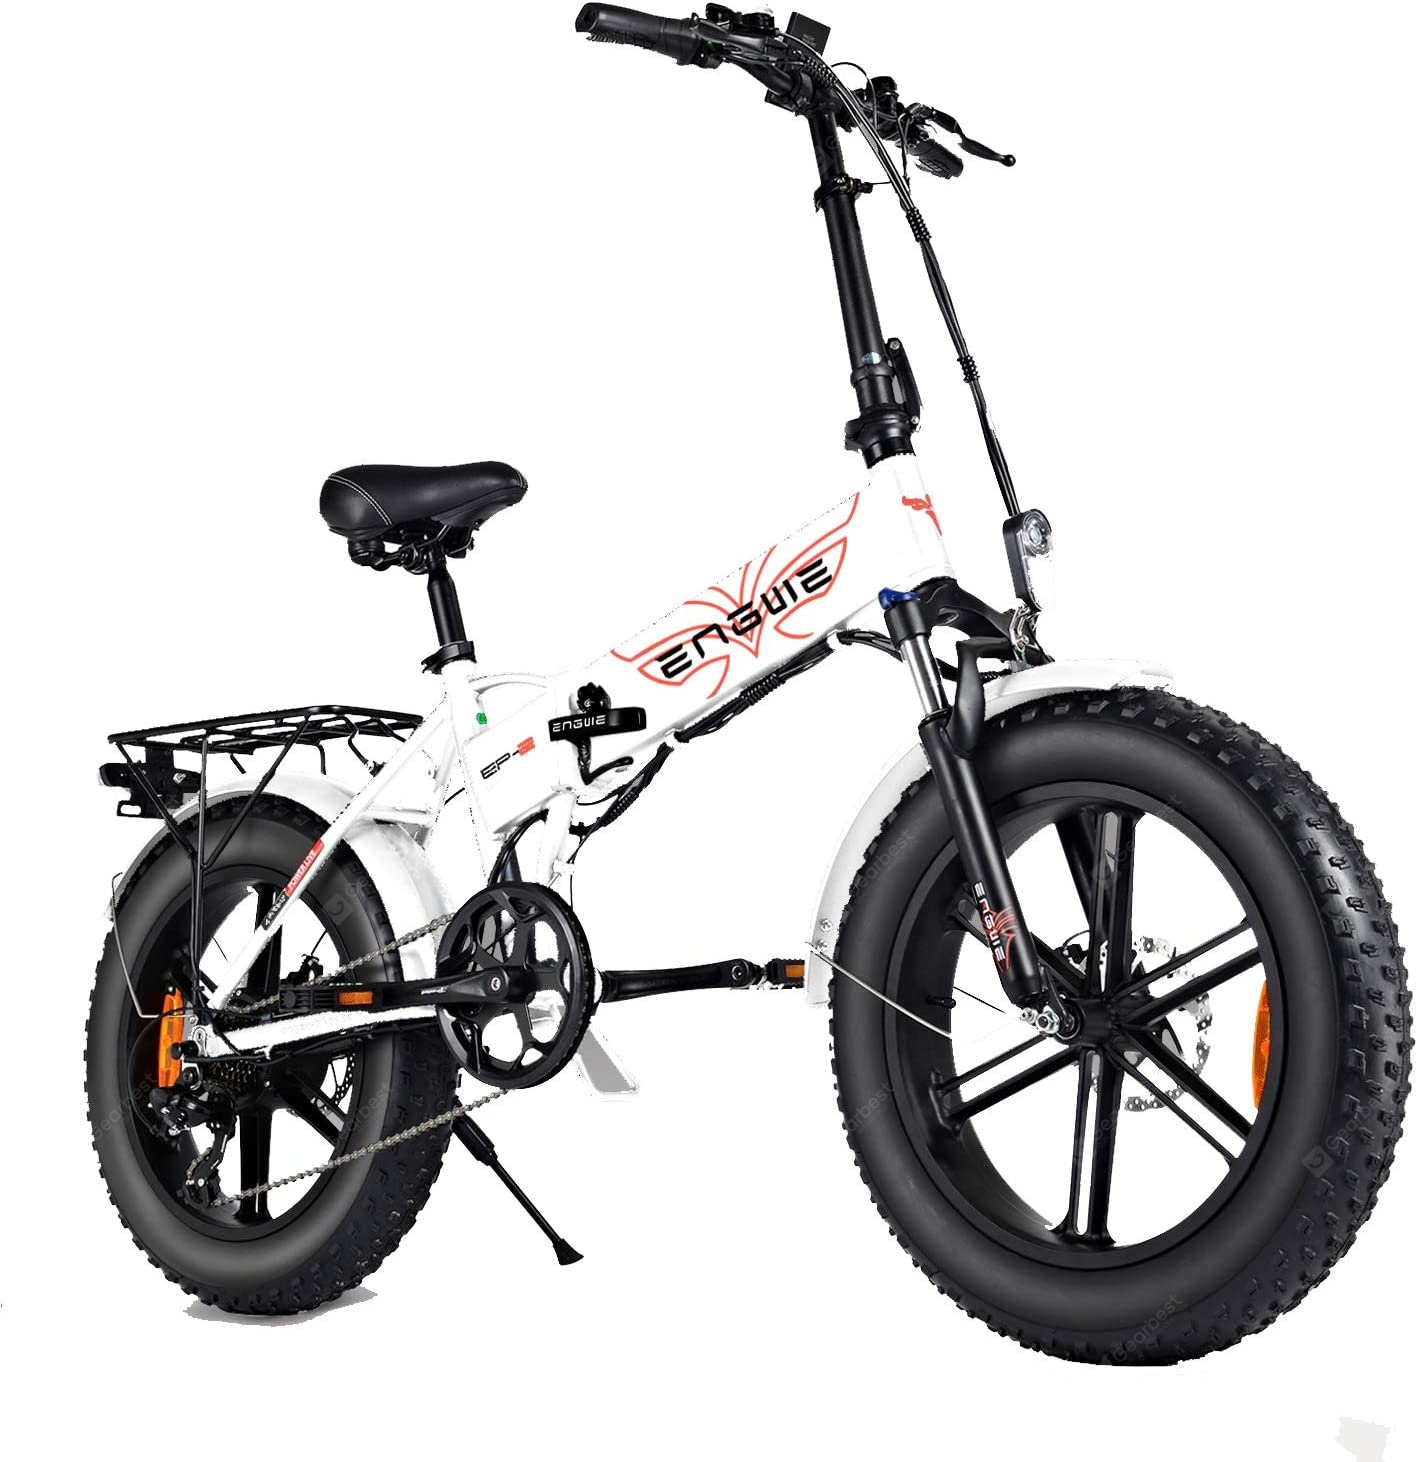 """ENGWE EP-2 PRO 750W Folding Fat Tire Electric Bike with 48V 12.8Ah Lithium-ion Battery"" 2"